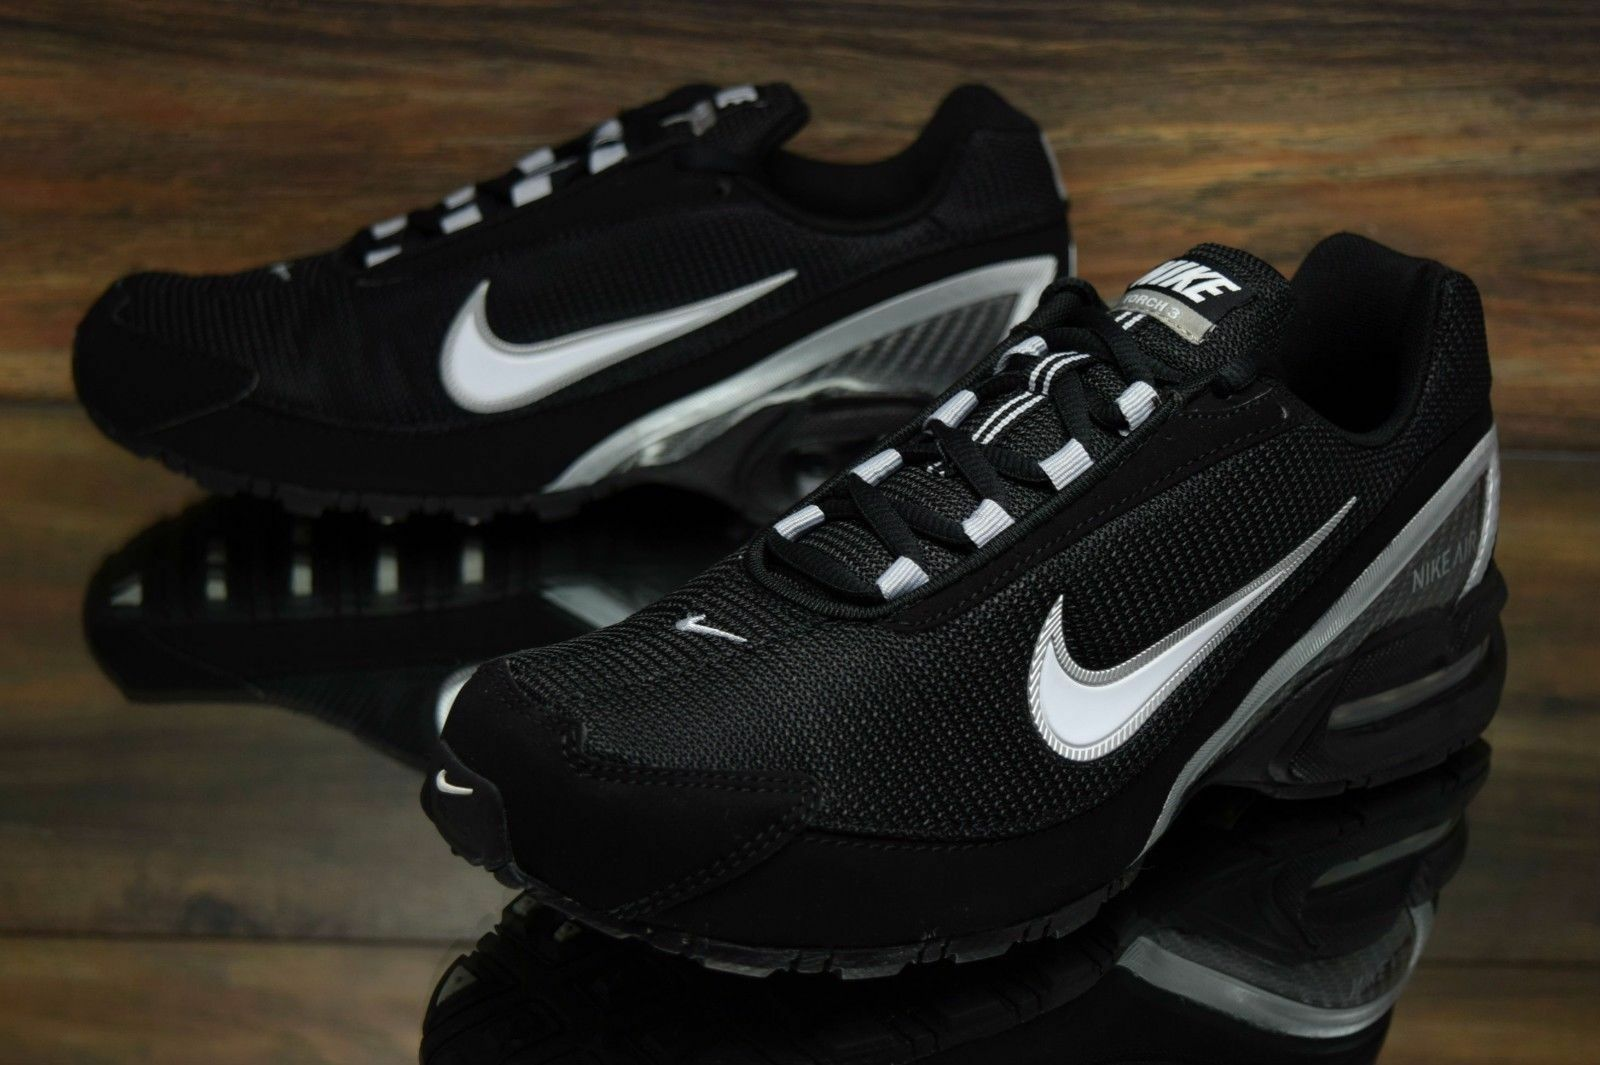 b212231da740b Nike Air Max Torch 3 Mens Running Shoes Black Silver Carbon White ...